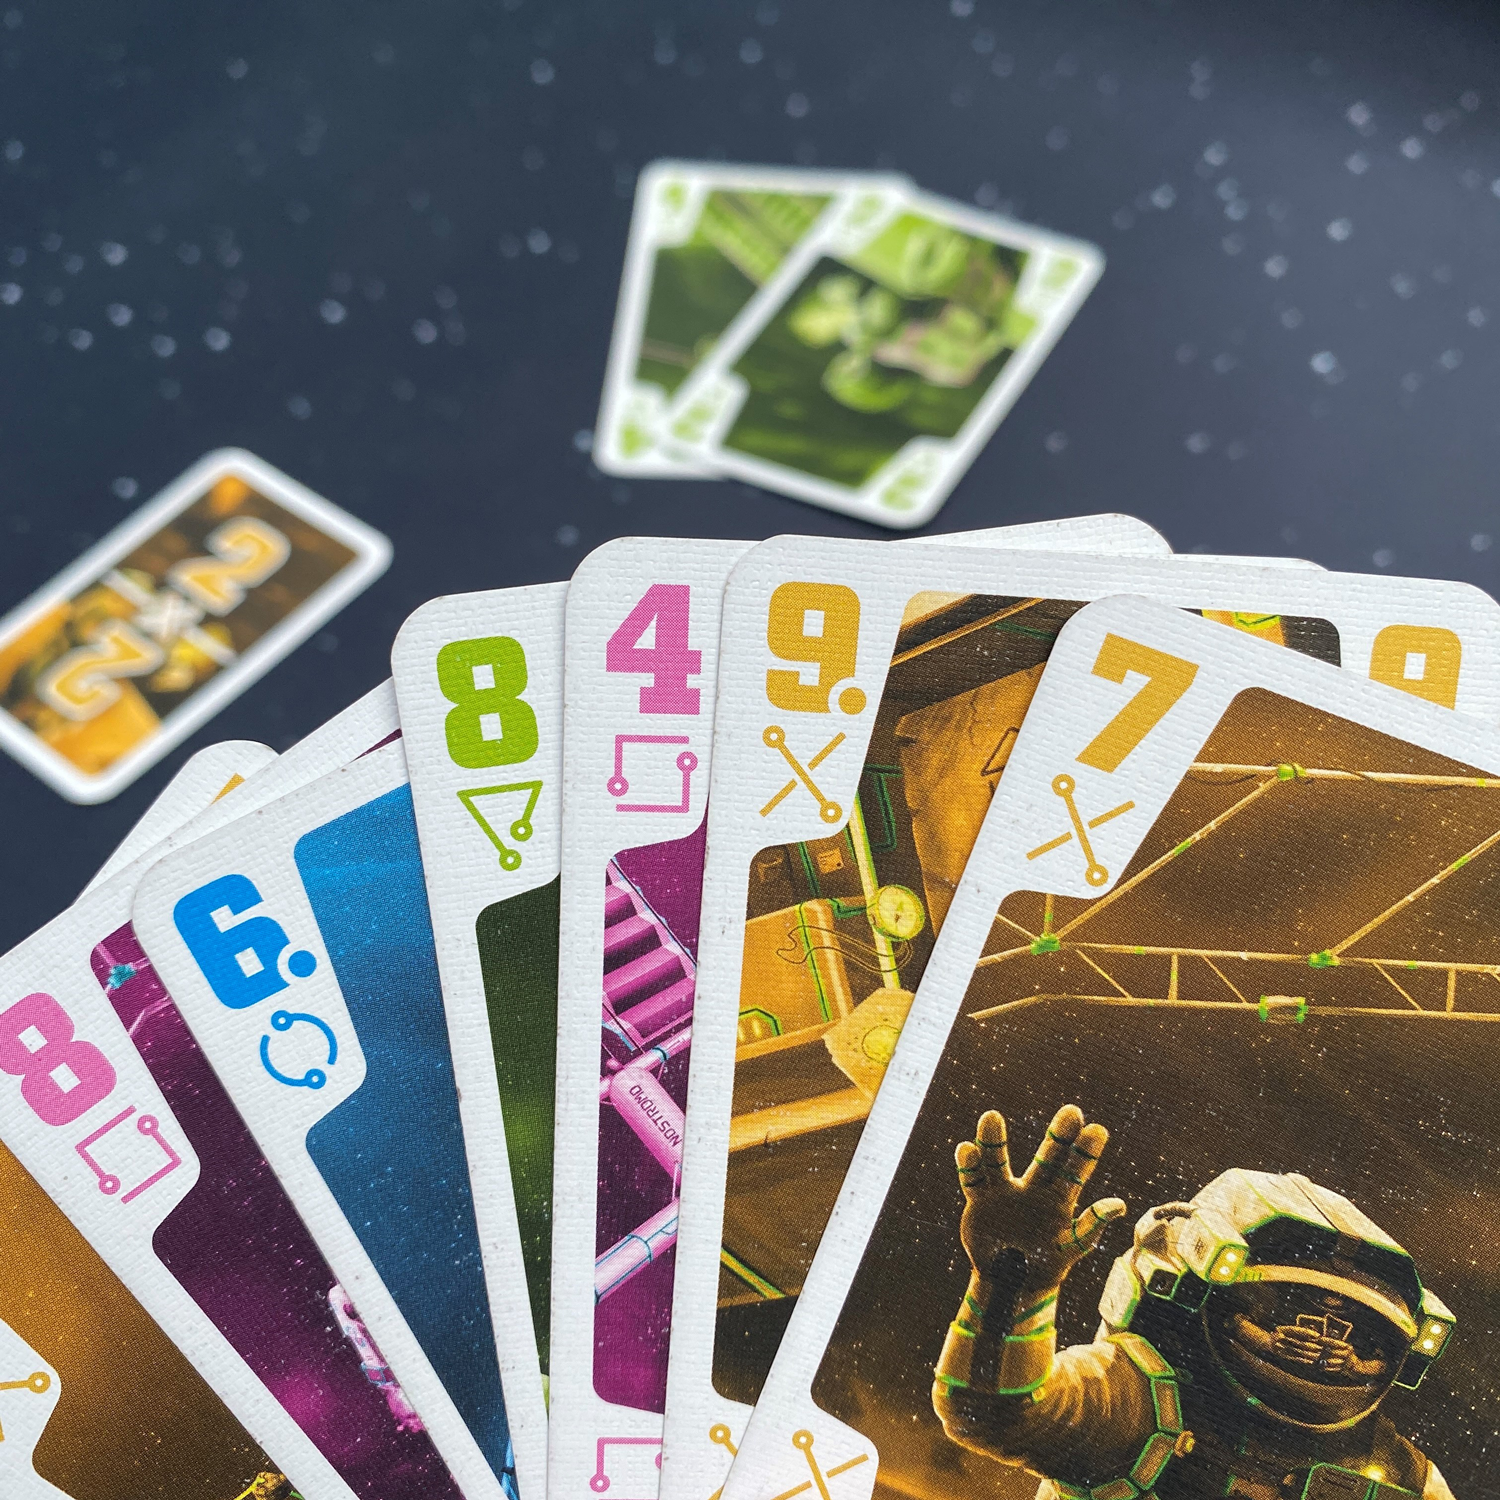 The-Crew-Board-Game-Review-Gameplay